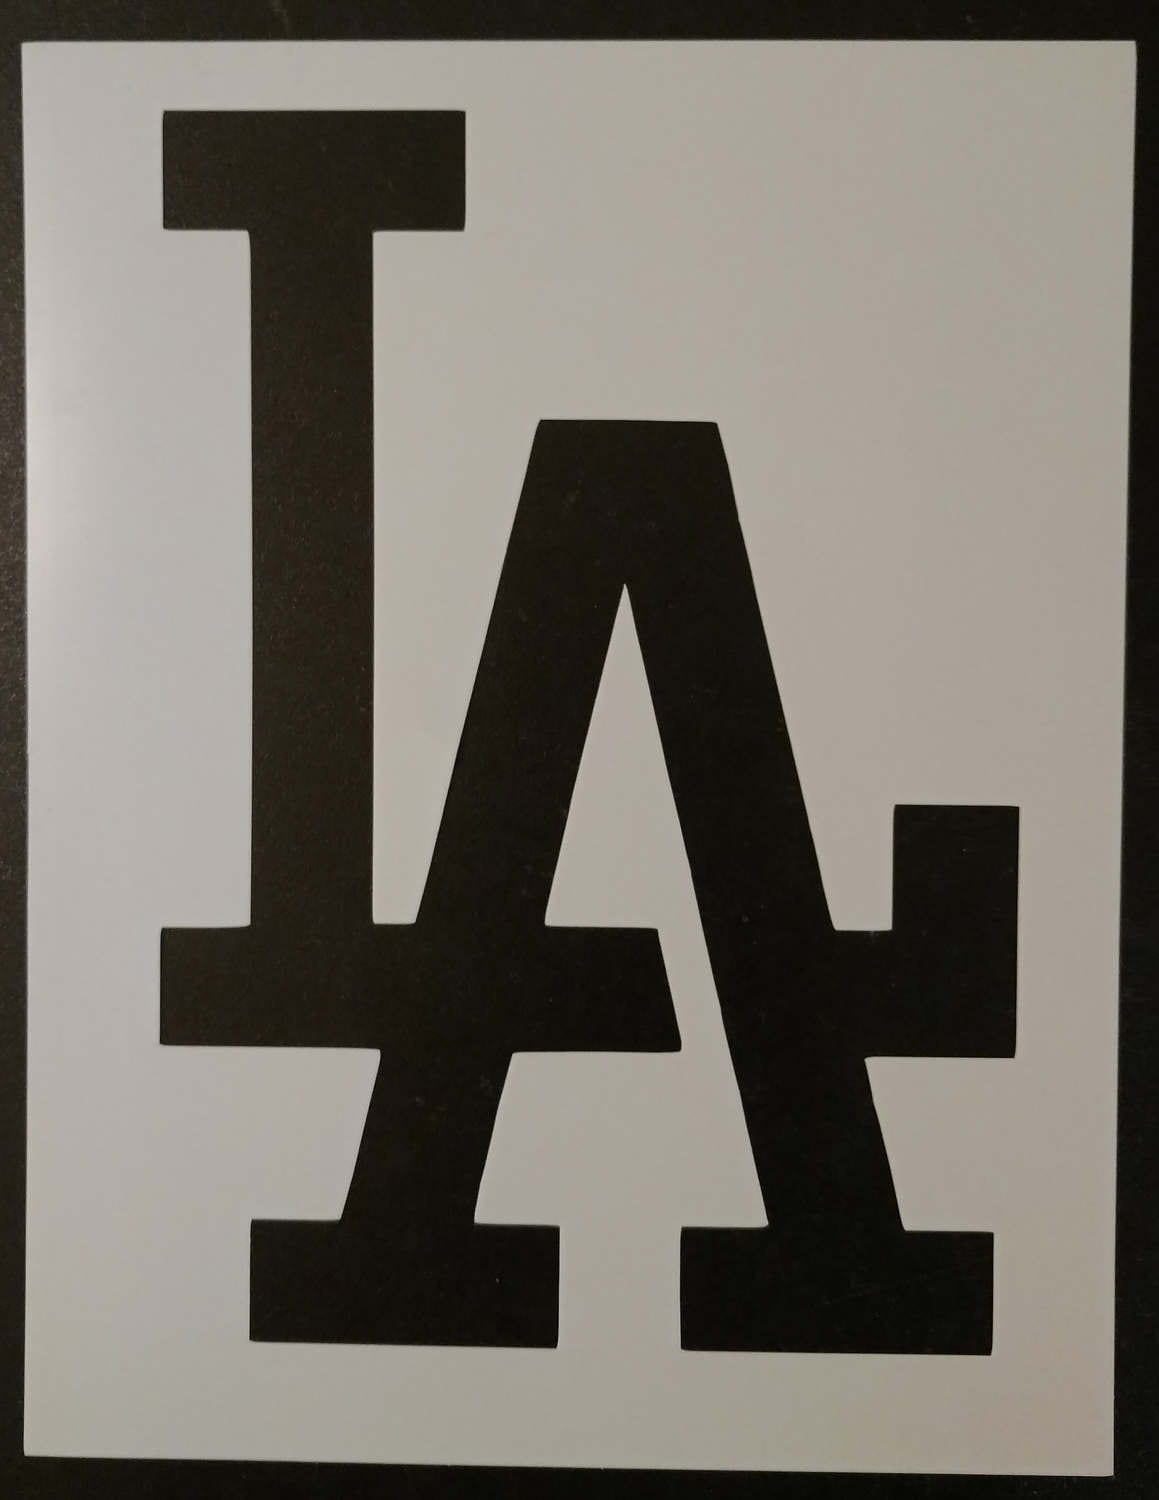 La la dodgers los angeles custom stencil fast free shipping from 1172 buycottarizona Image collections